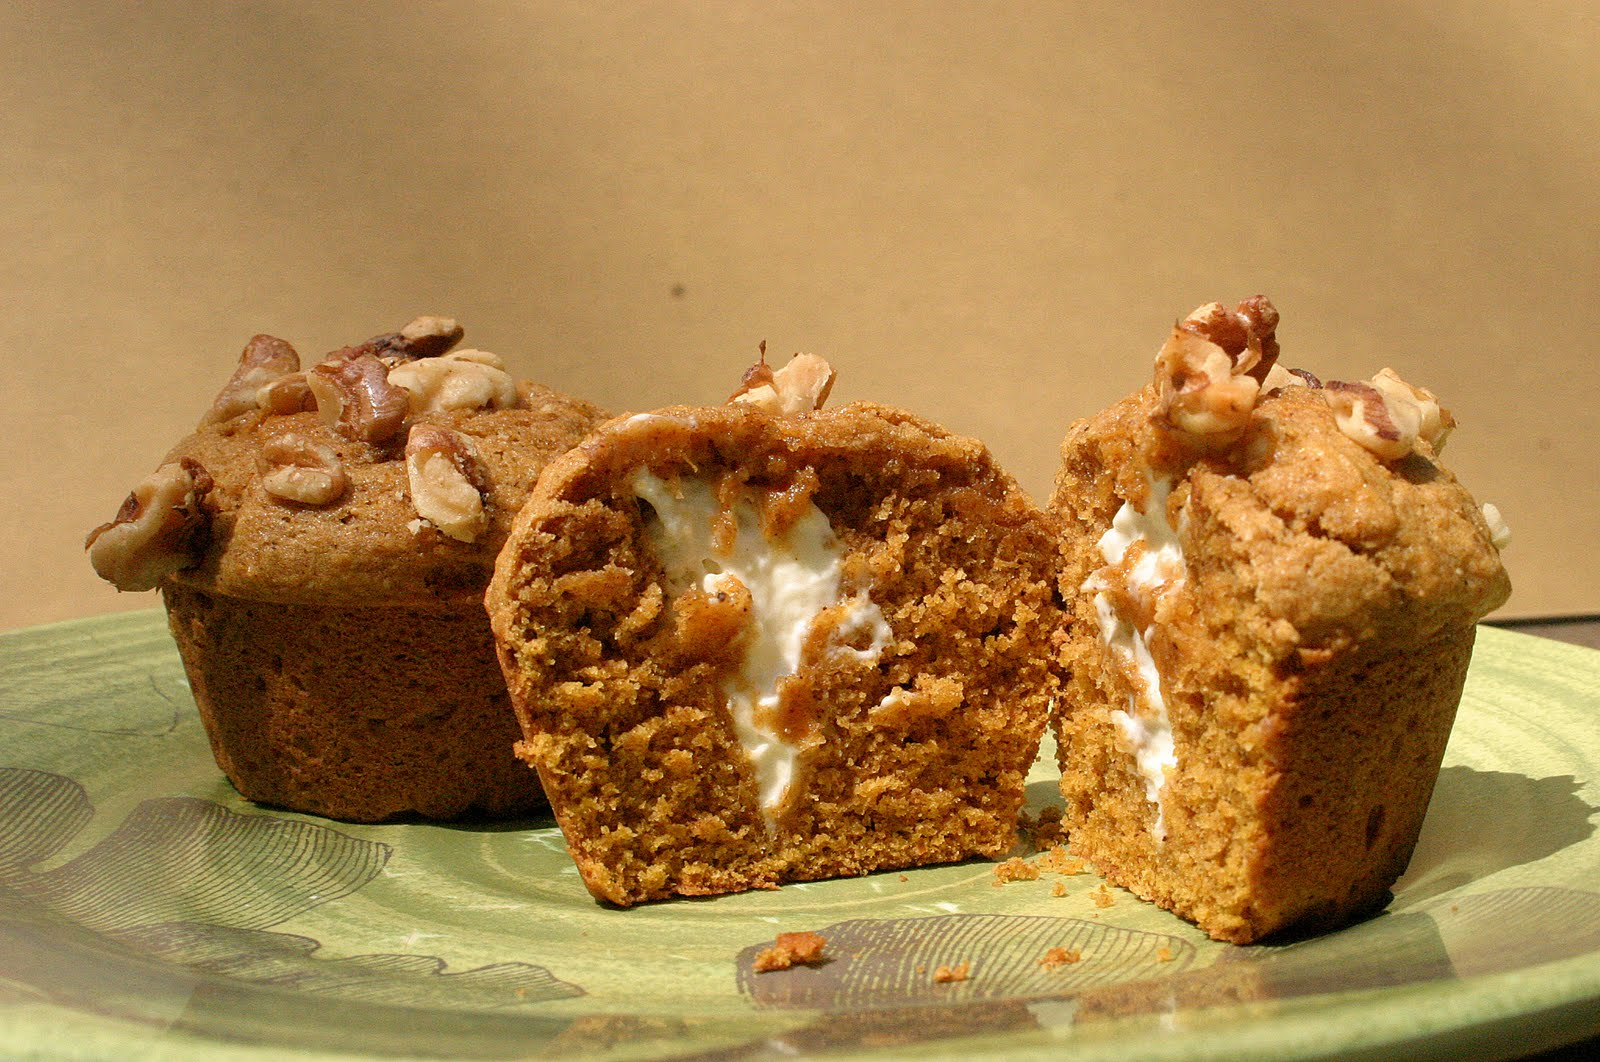 ... : This Week's Cravings (PUMPKIN): Pumpkin Cream Cheese Muffins